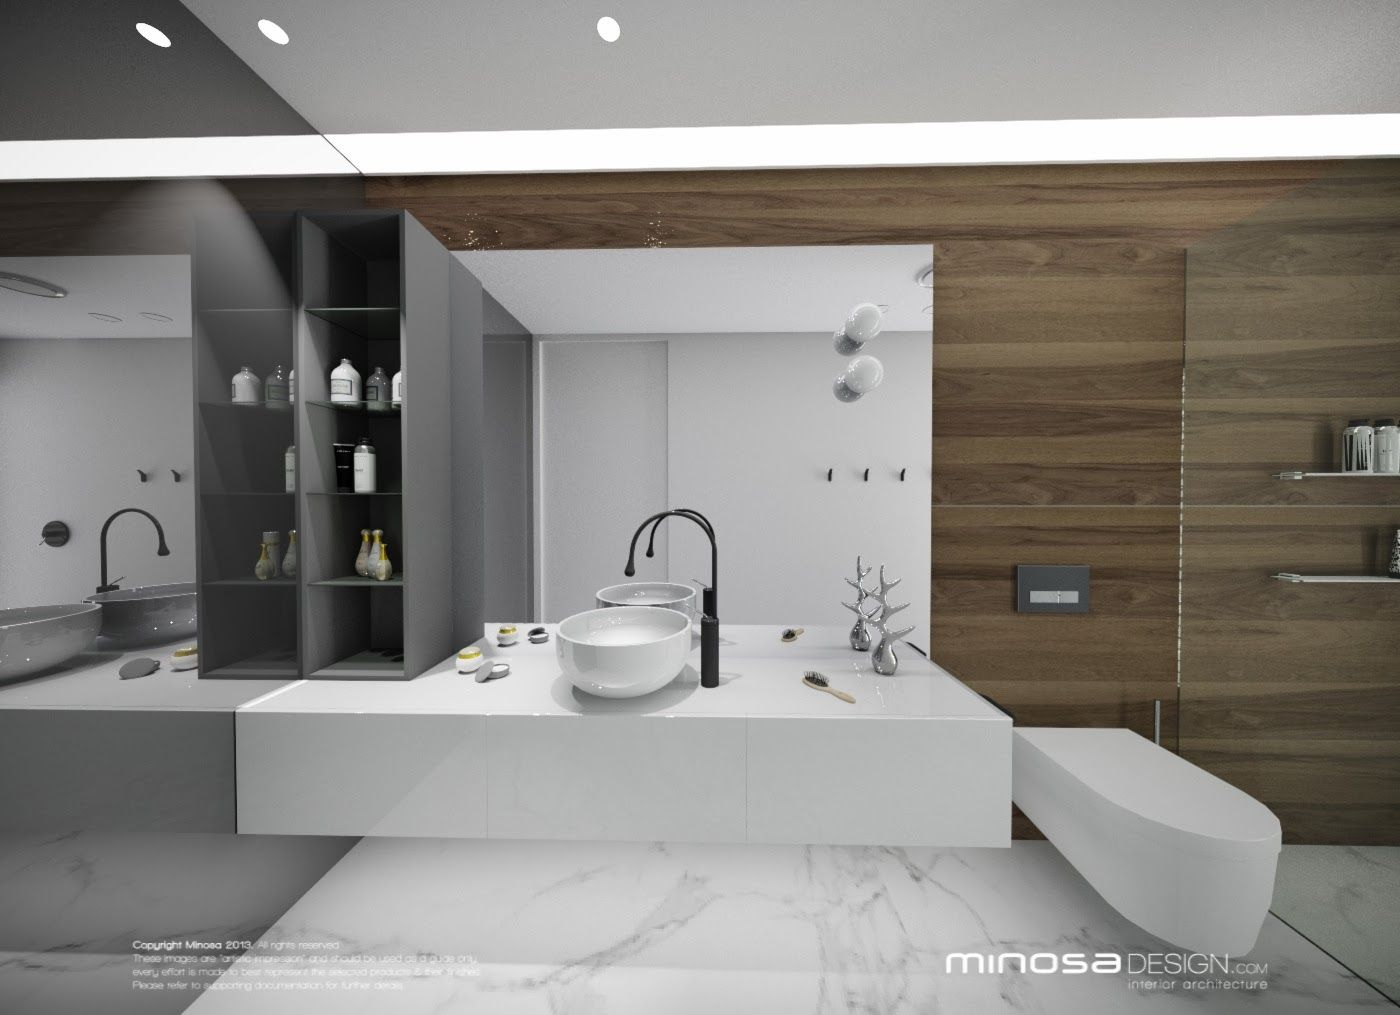 Kitchen And Bathroom Designers Captivating Modern Kitchen And Bathroom Design Solutionsaward Winning Design Design Decoration